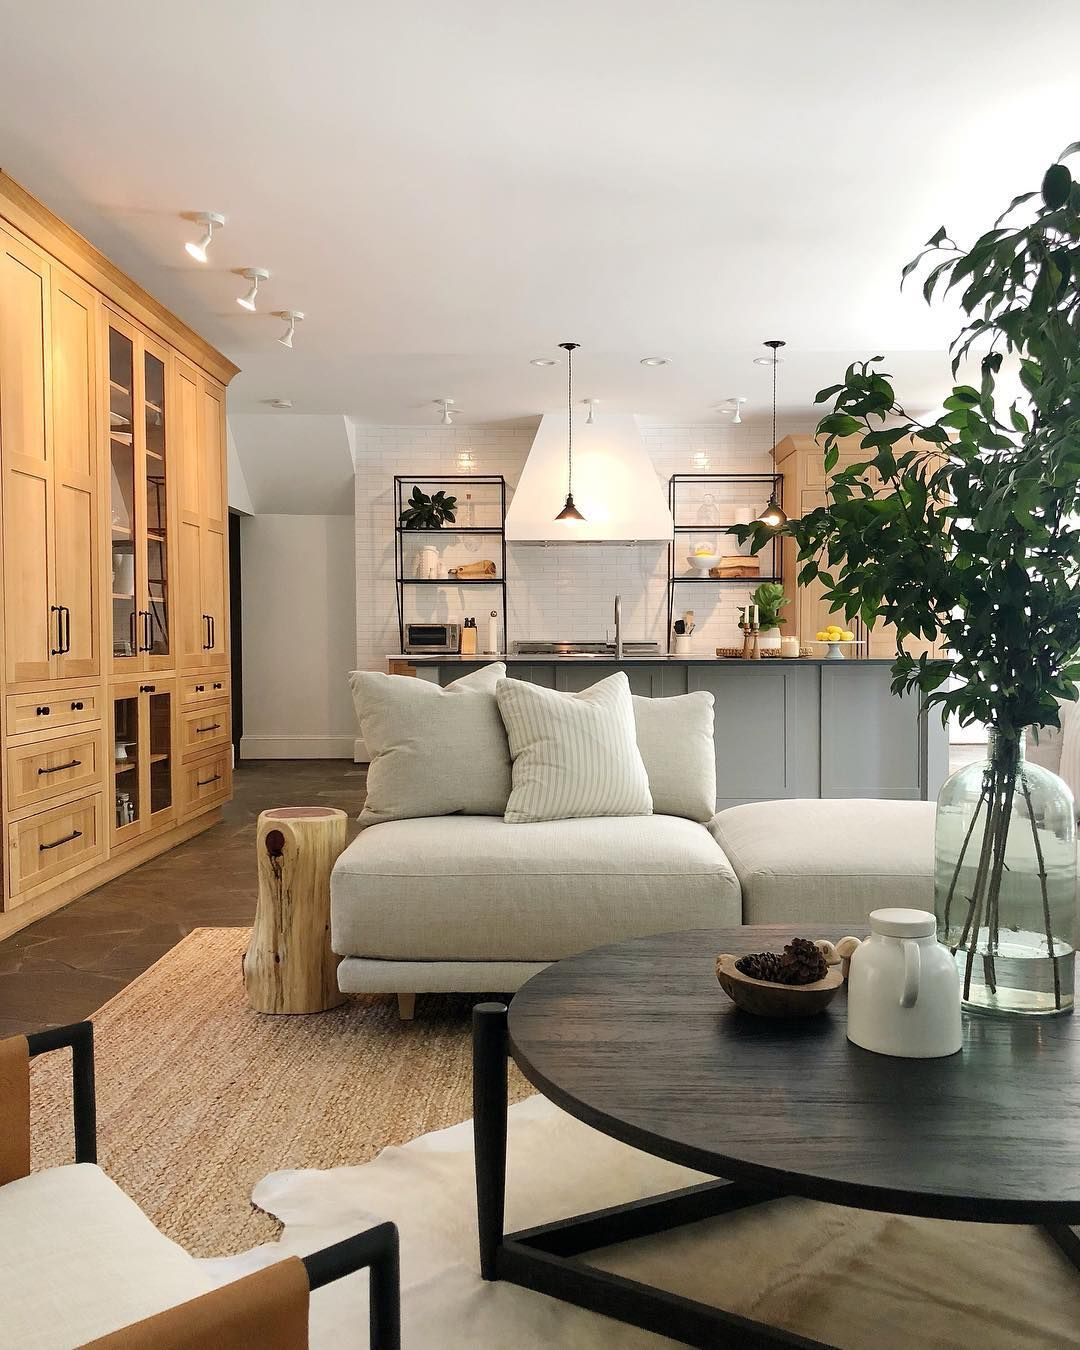 Making The Case For Open Concept Before There Was A Wall Dividing The Kitchen And Family Room Preventing Mean Open Concept Family Room Family Room Sectional #open #concept #living #room #with #sectional